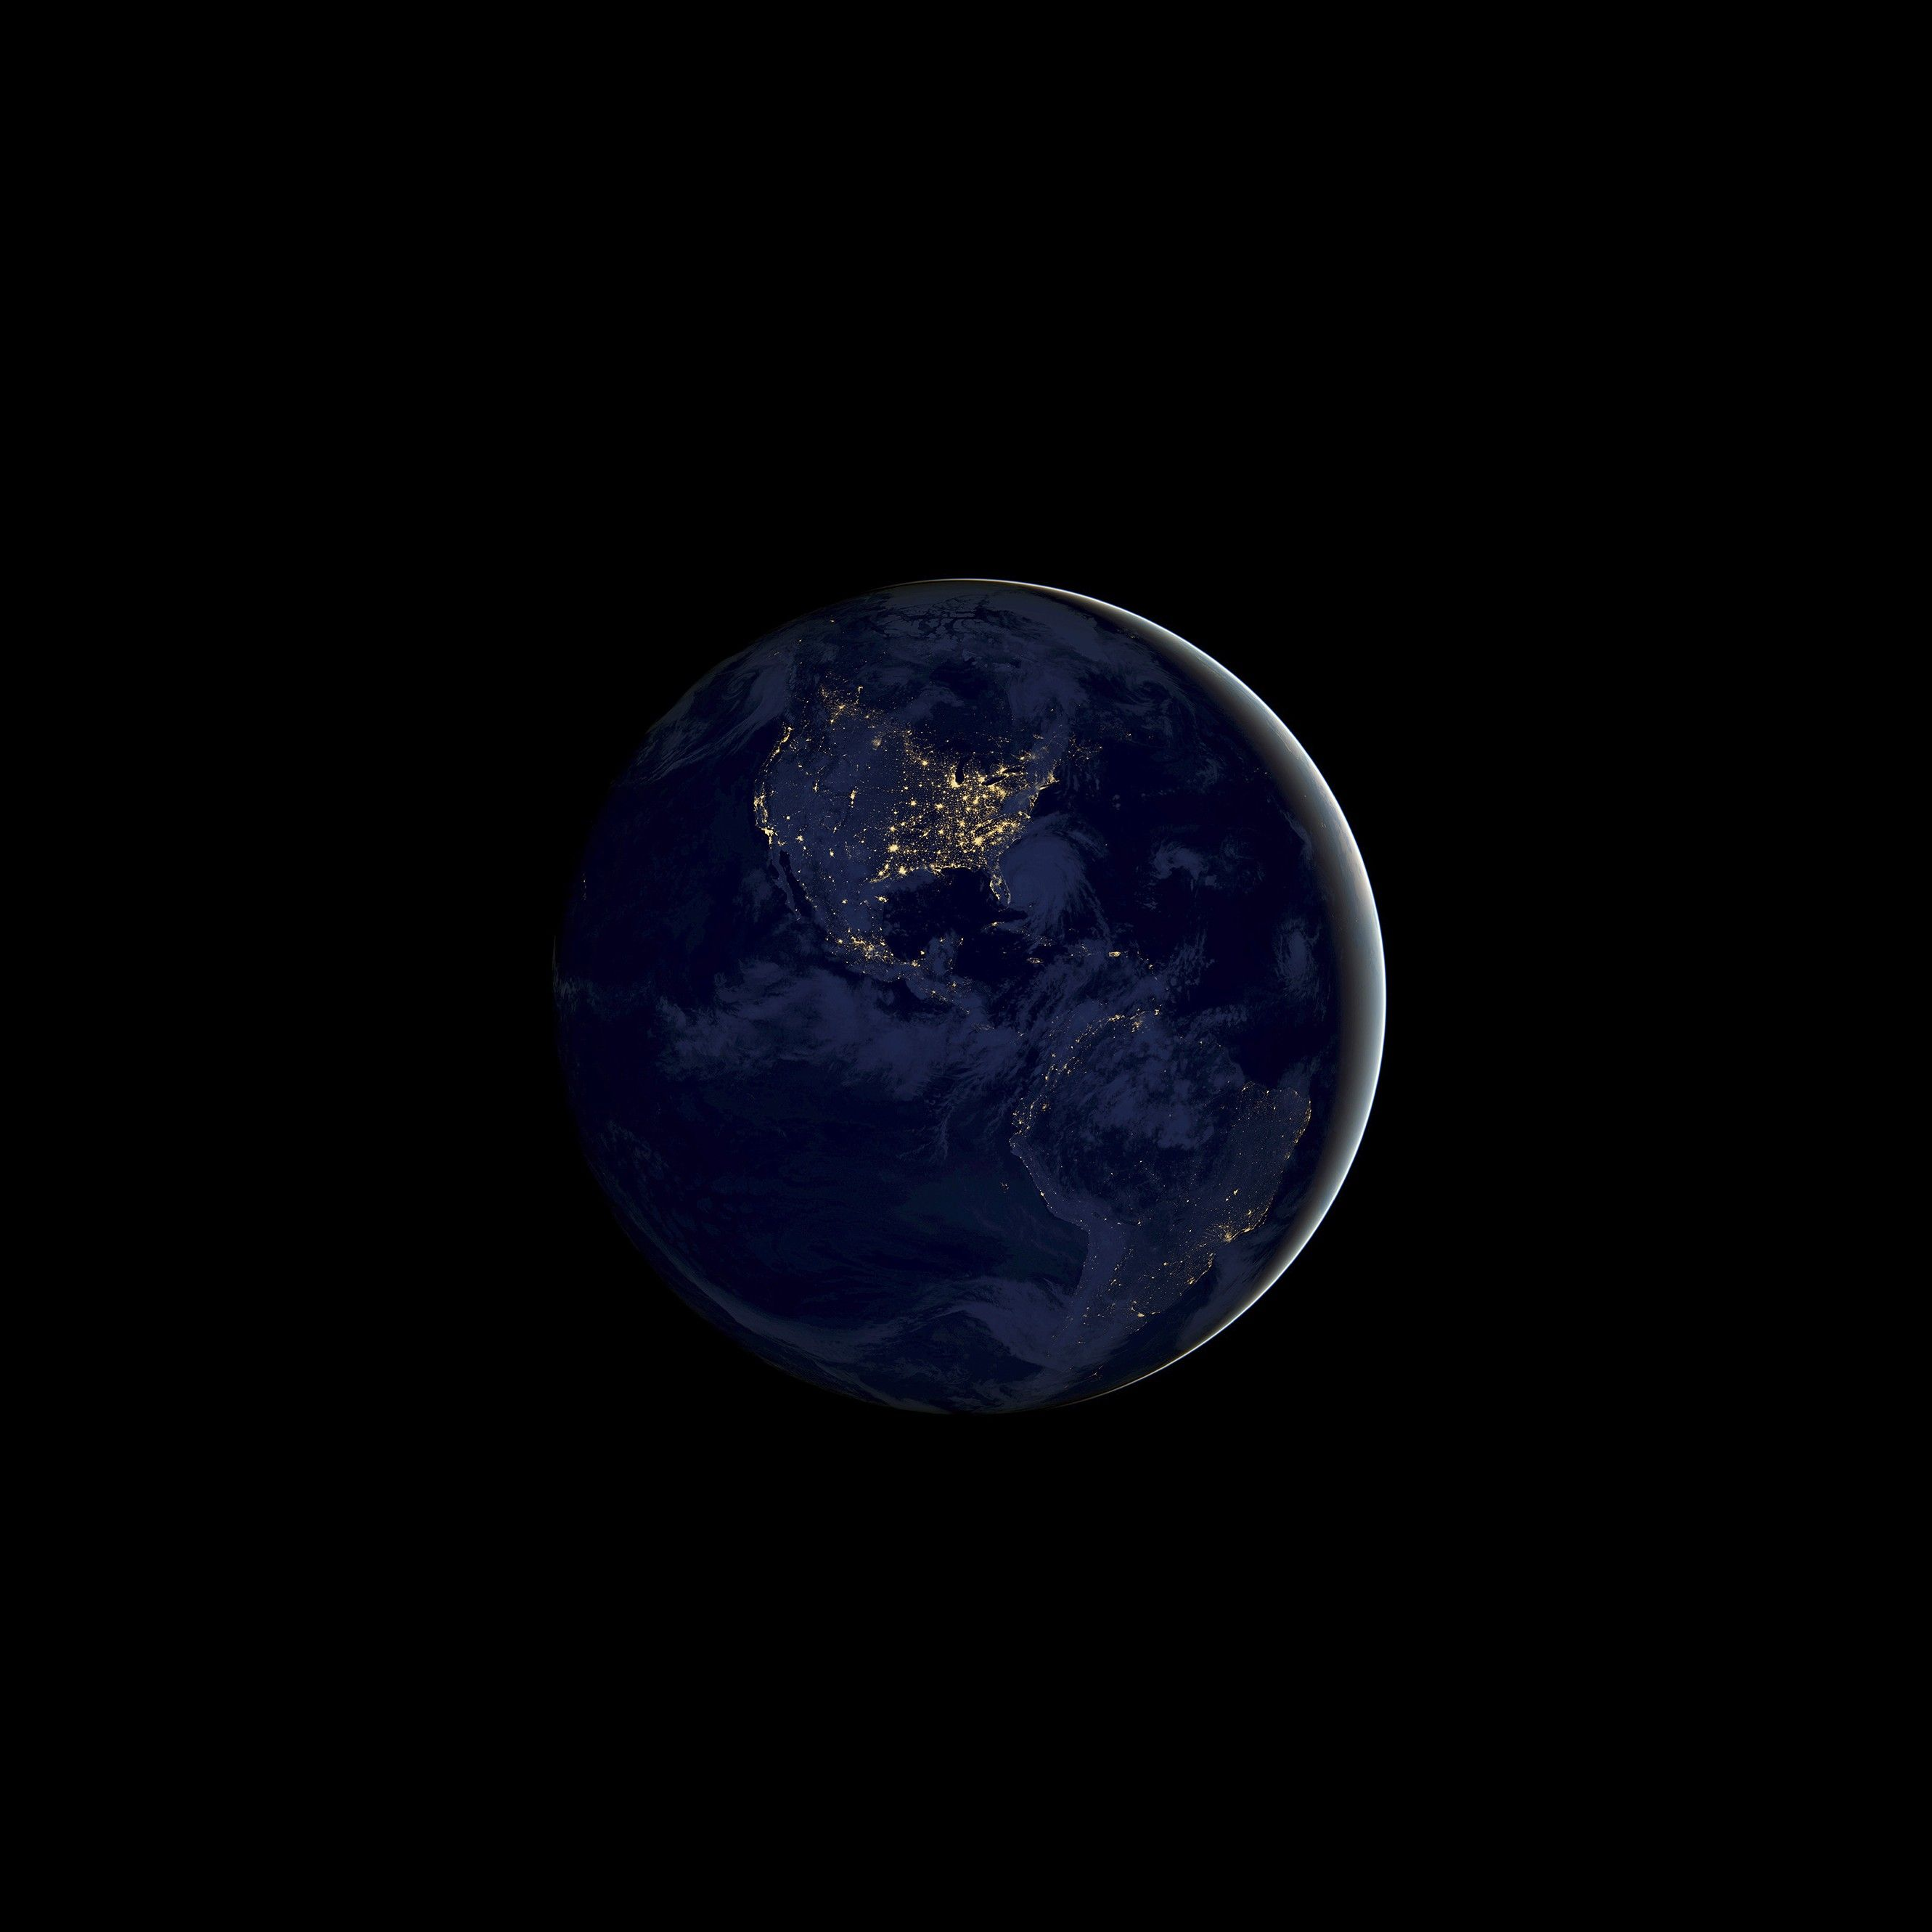 Hd wallpaper tap - Earth Night Tap To See More Ios 11 Hd Wallpapers